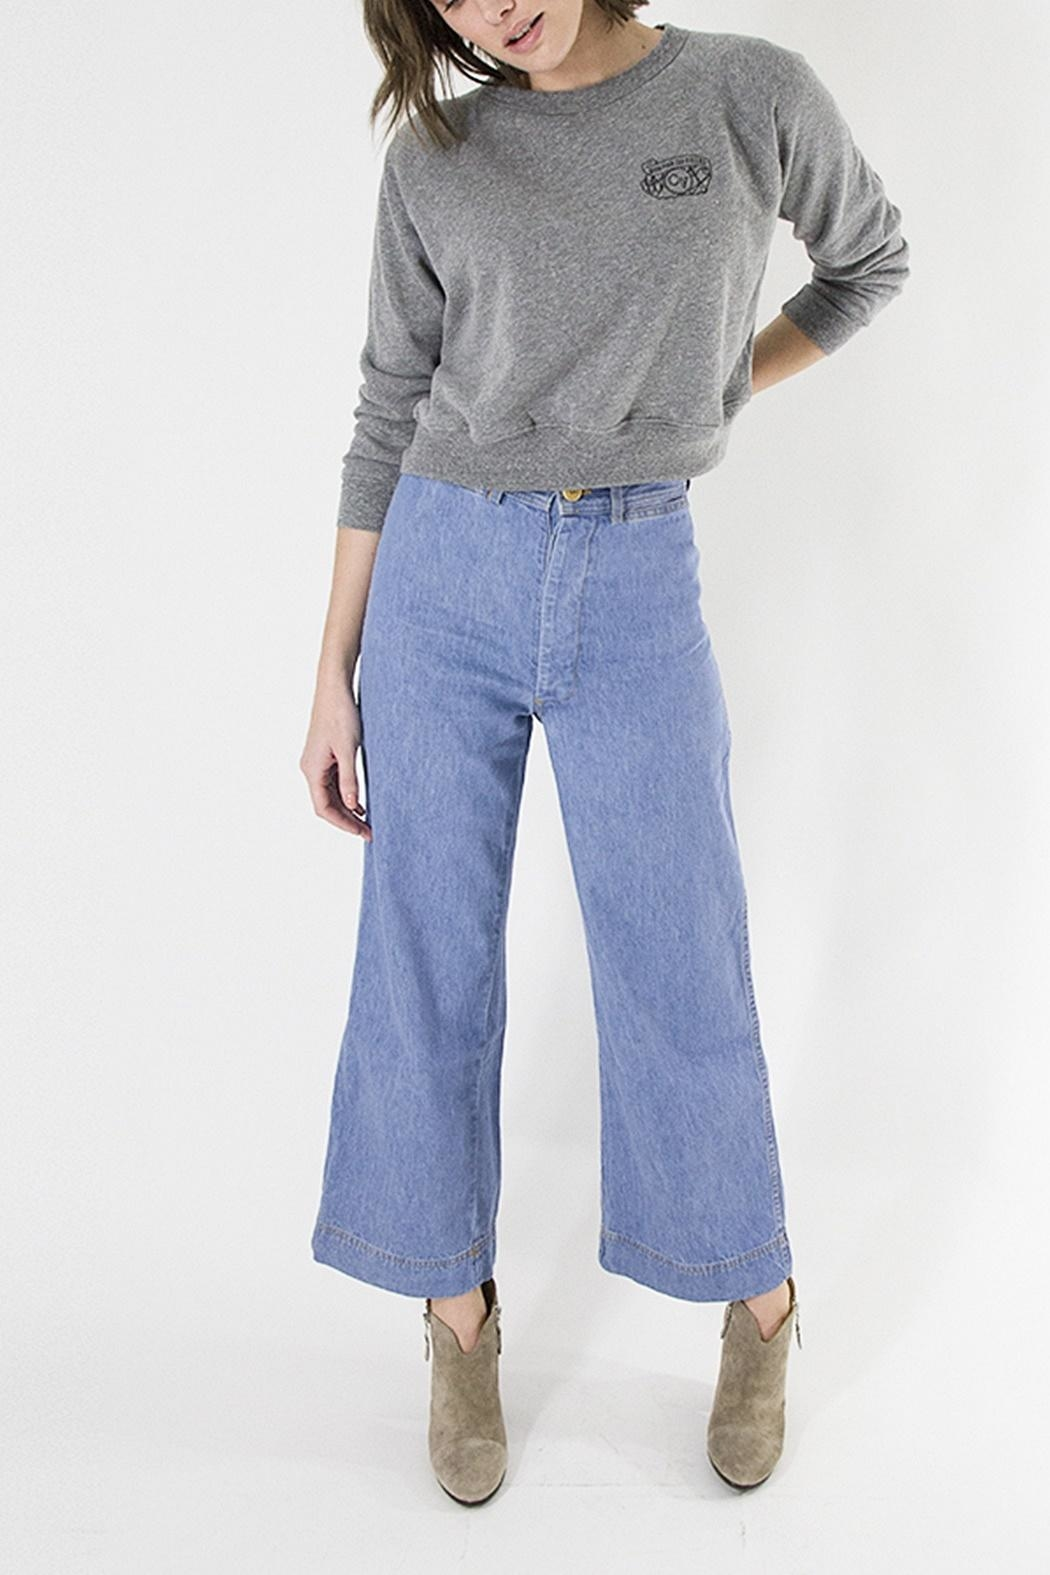 Clare V. Camp Fit Sweatshirt - Front Cropped Image